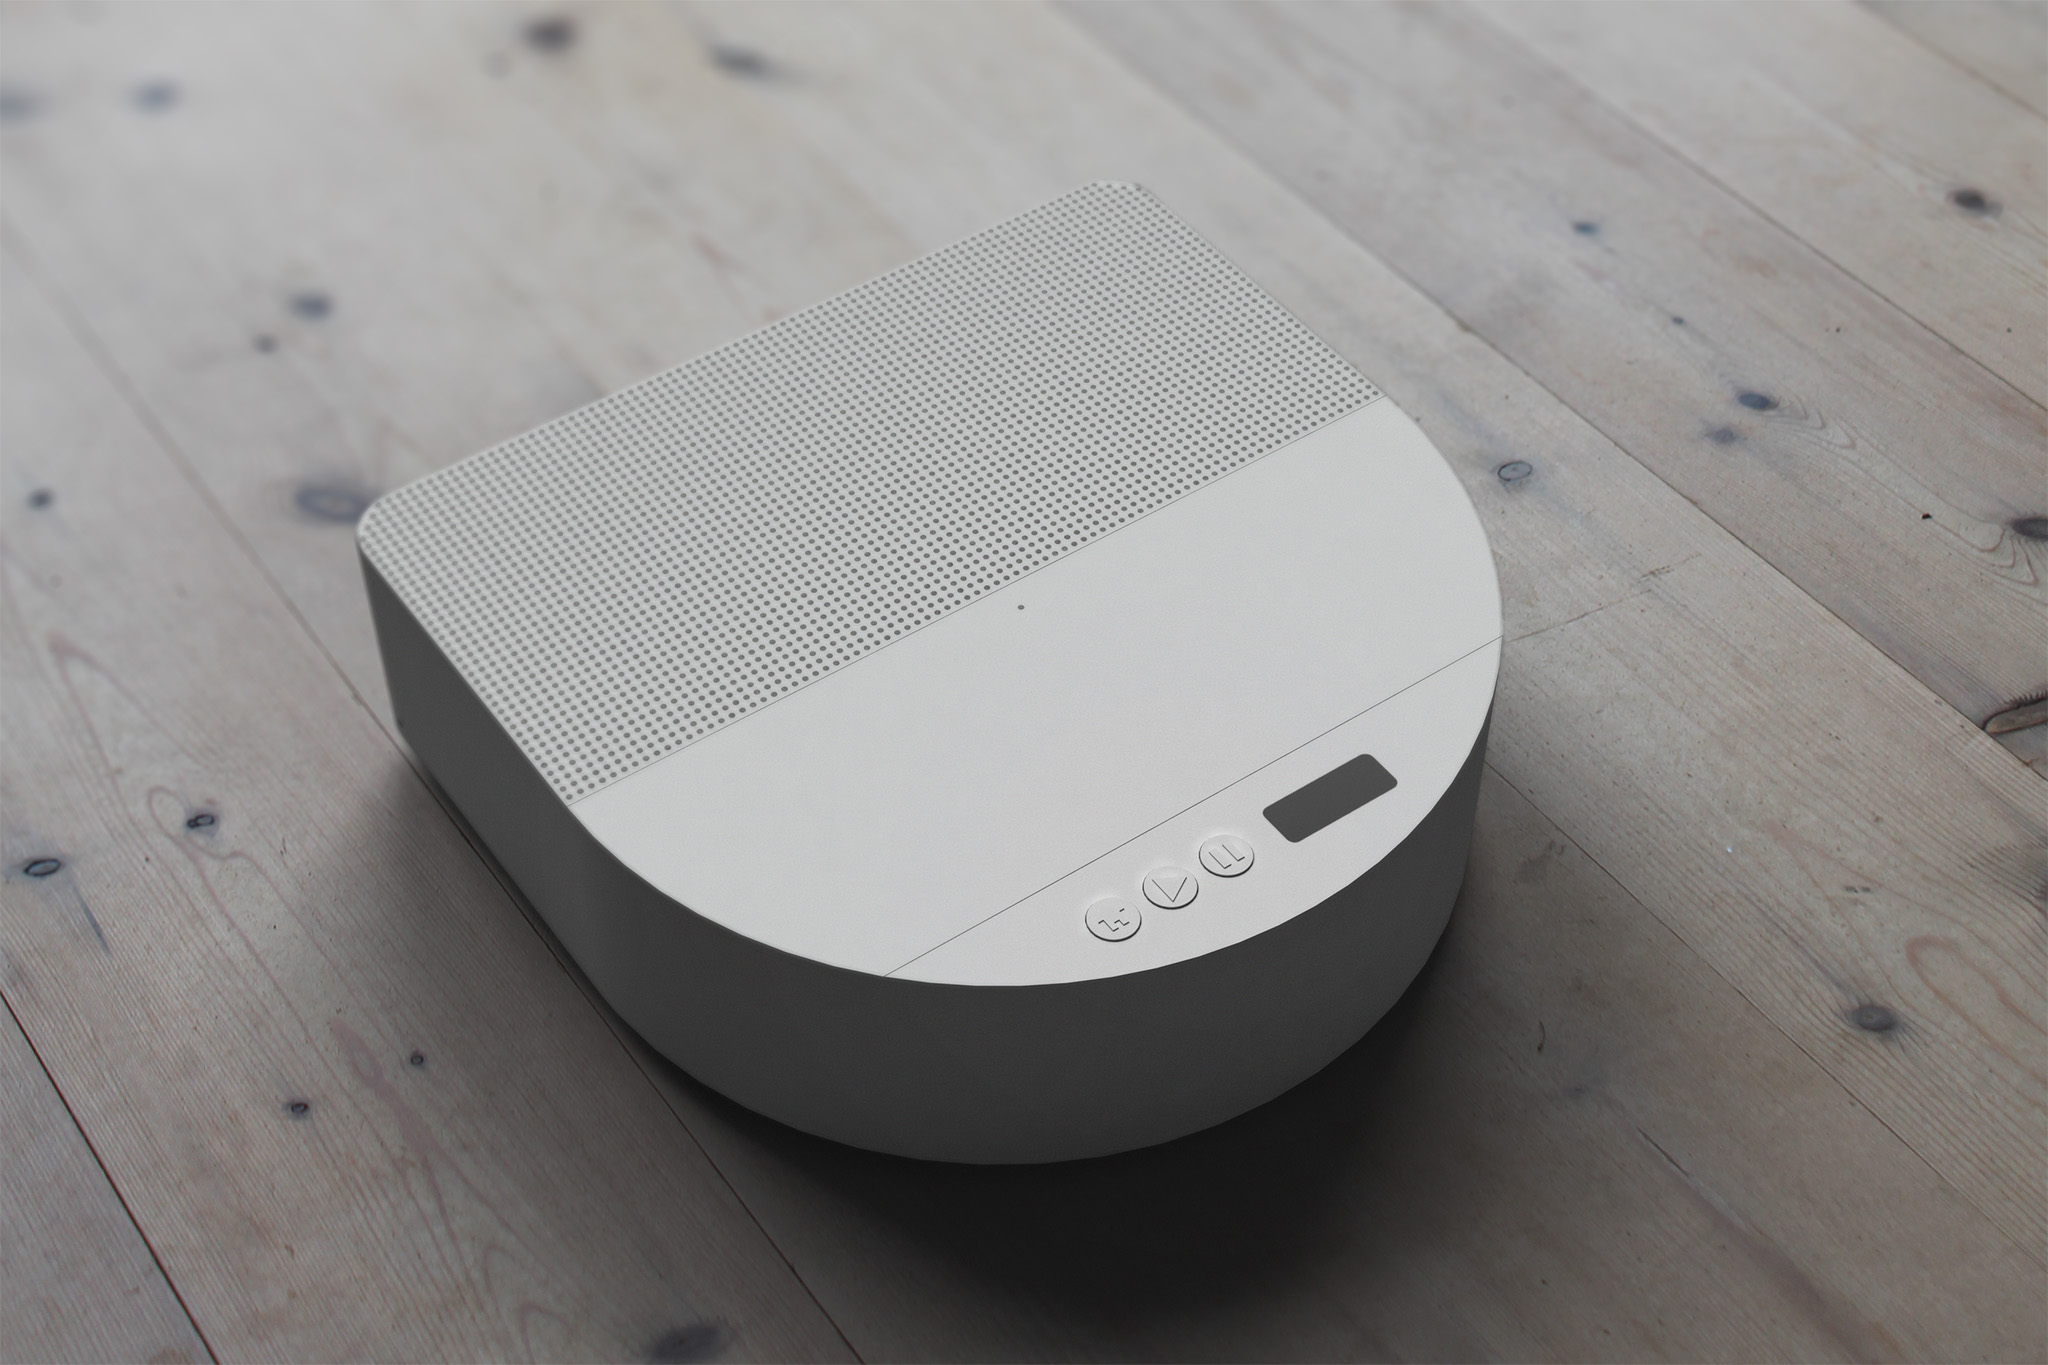 MUJI Vacuum cleaning robot concept